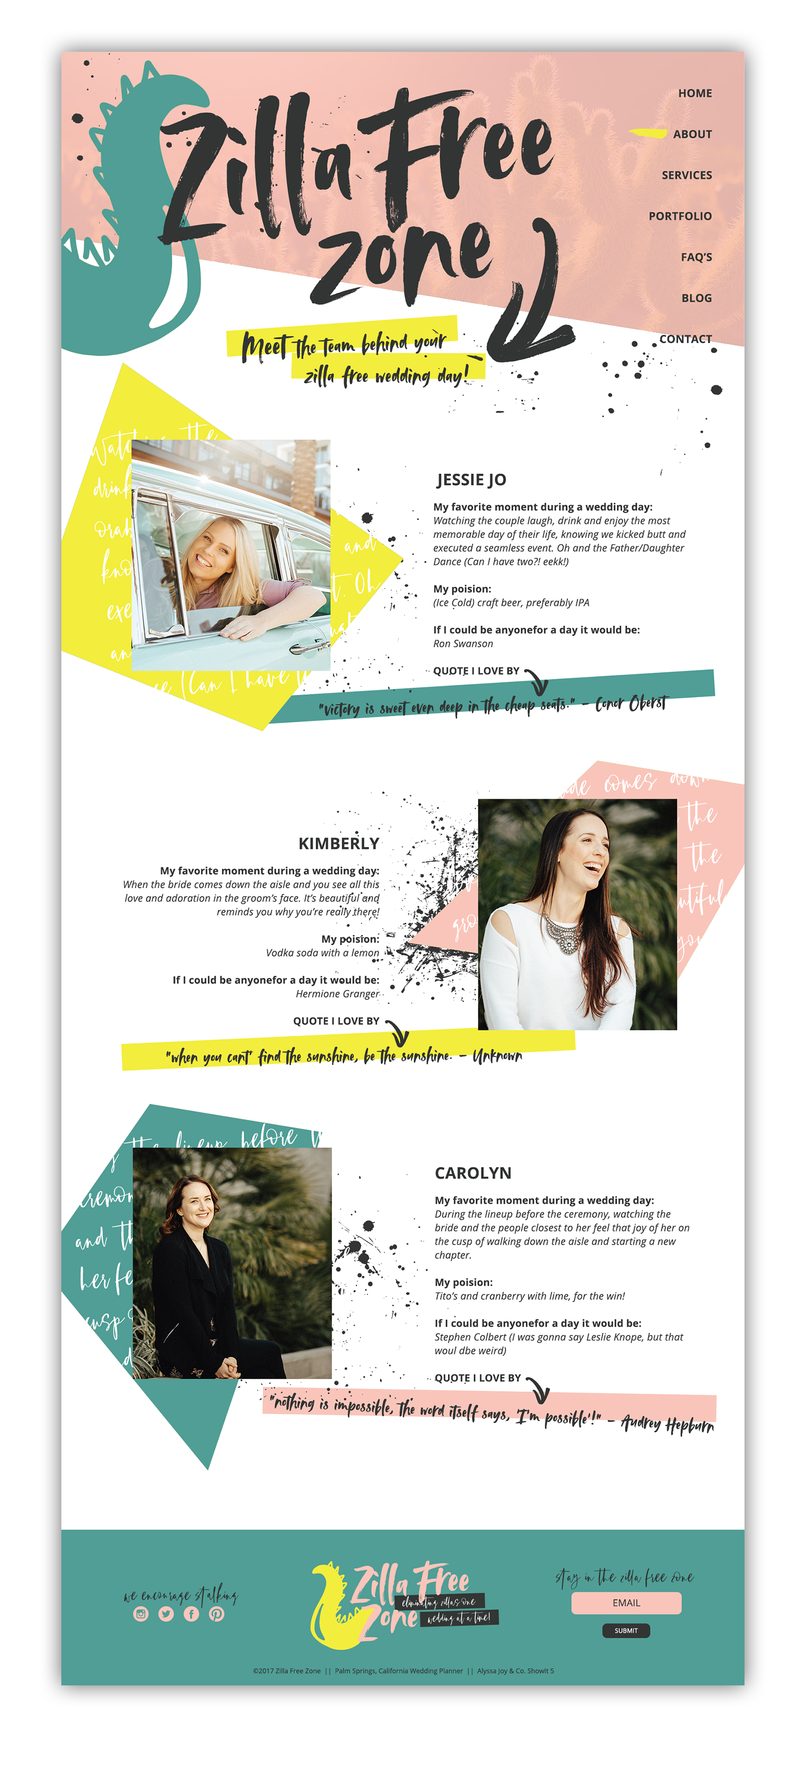 Alyssa Joy & Co. Brand & Web Designer for Creatives & Small Businesses || Zilla Free Zone, Wedding Planner Showit5 Website